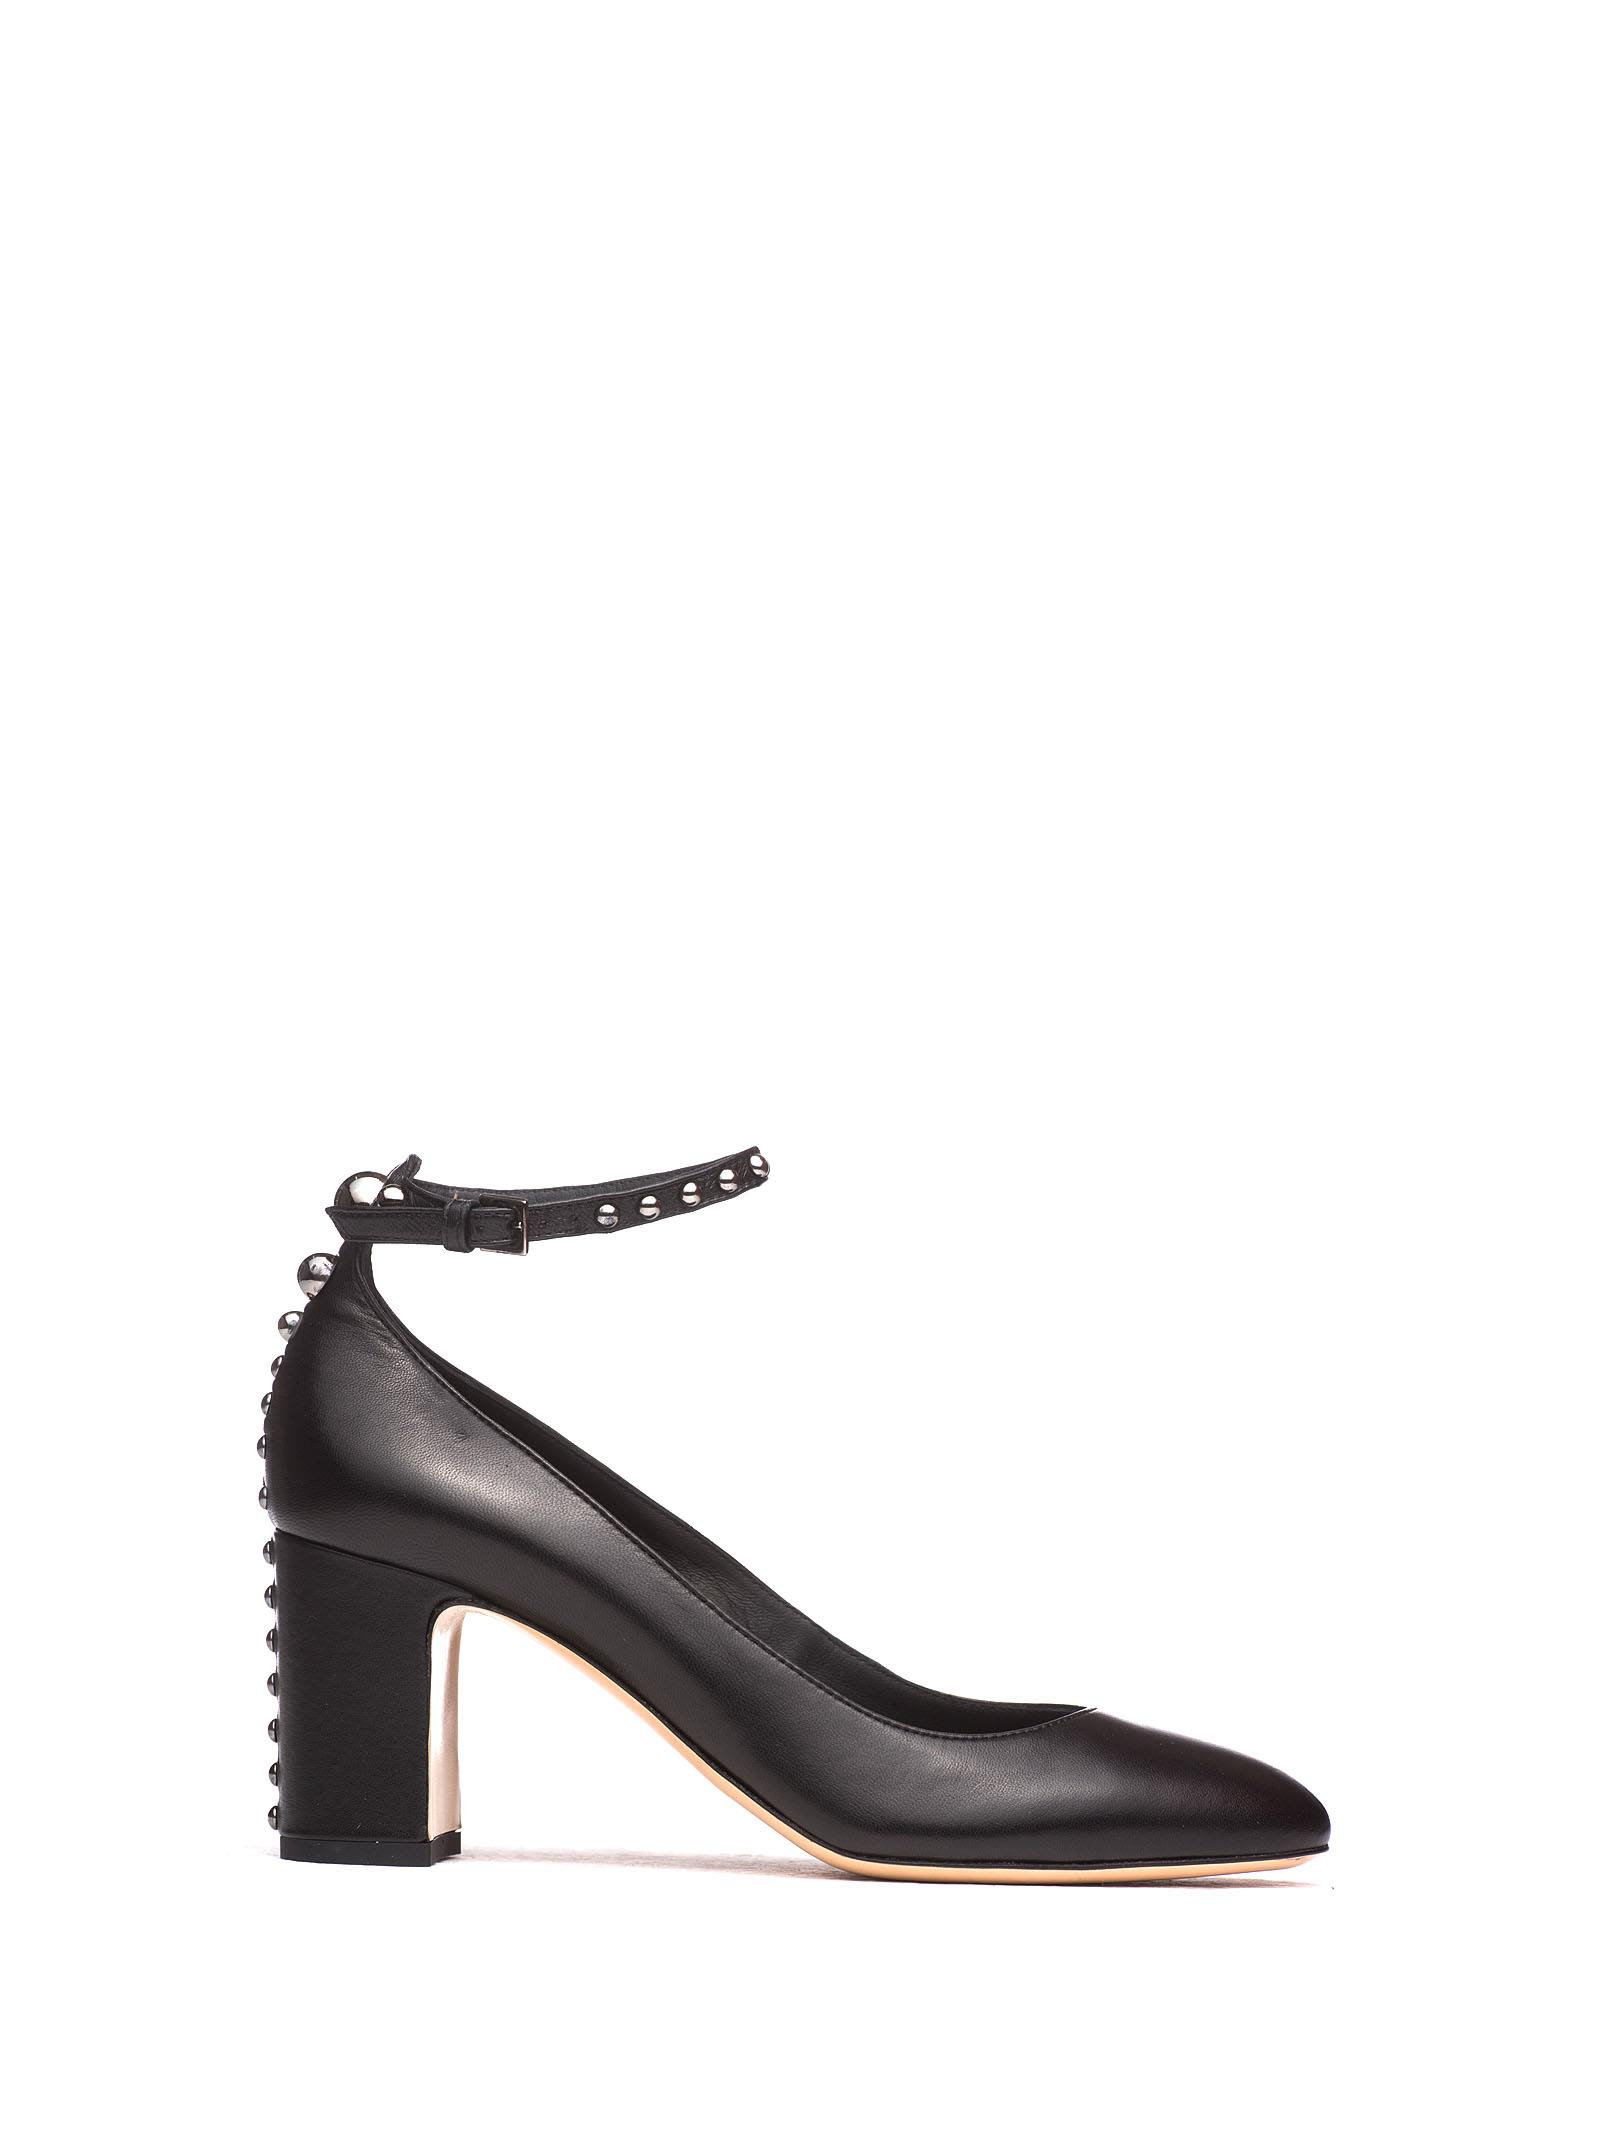 NINALILOU Pumps With Studs in Nero